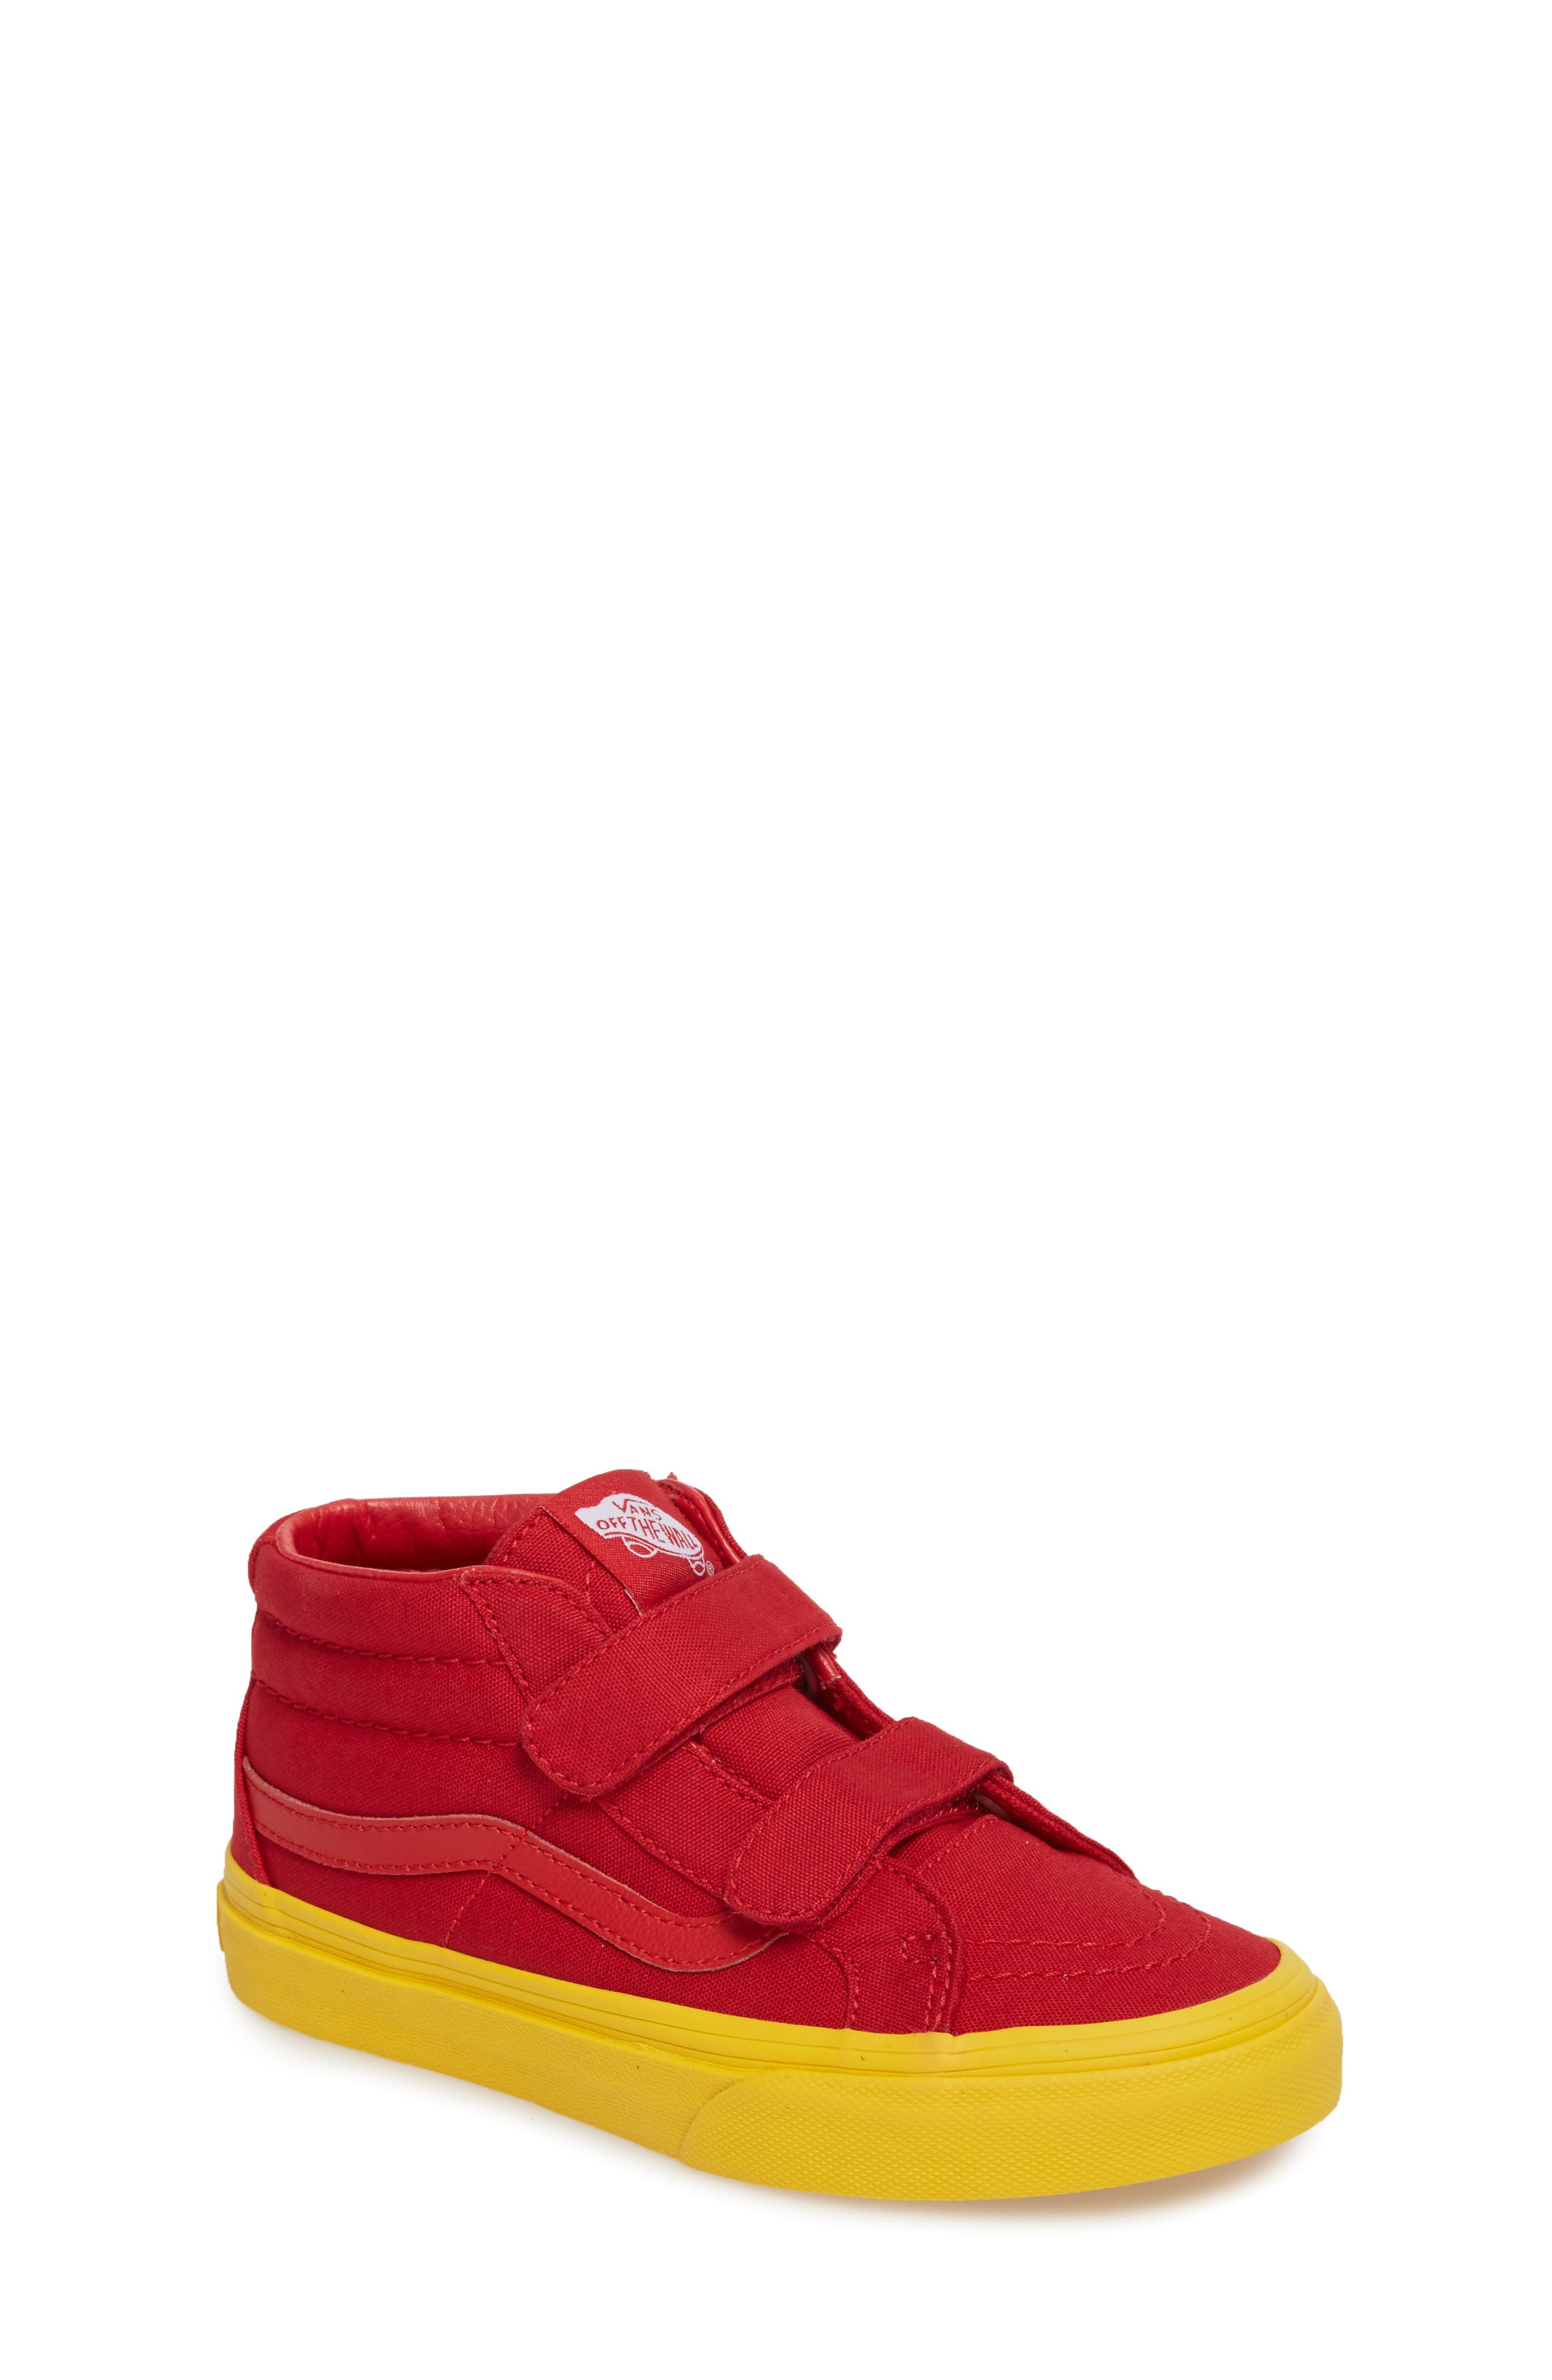 Sk8-Mid Reissue Sneaker,                         Main,                         color, Red/ Gold Cosplay